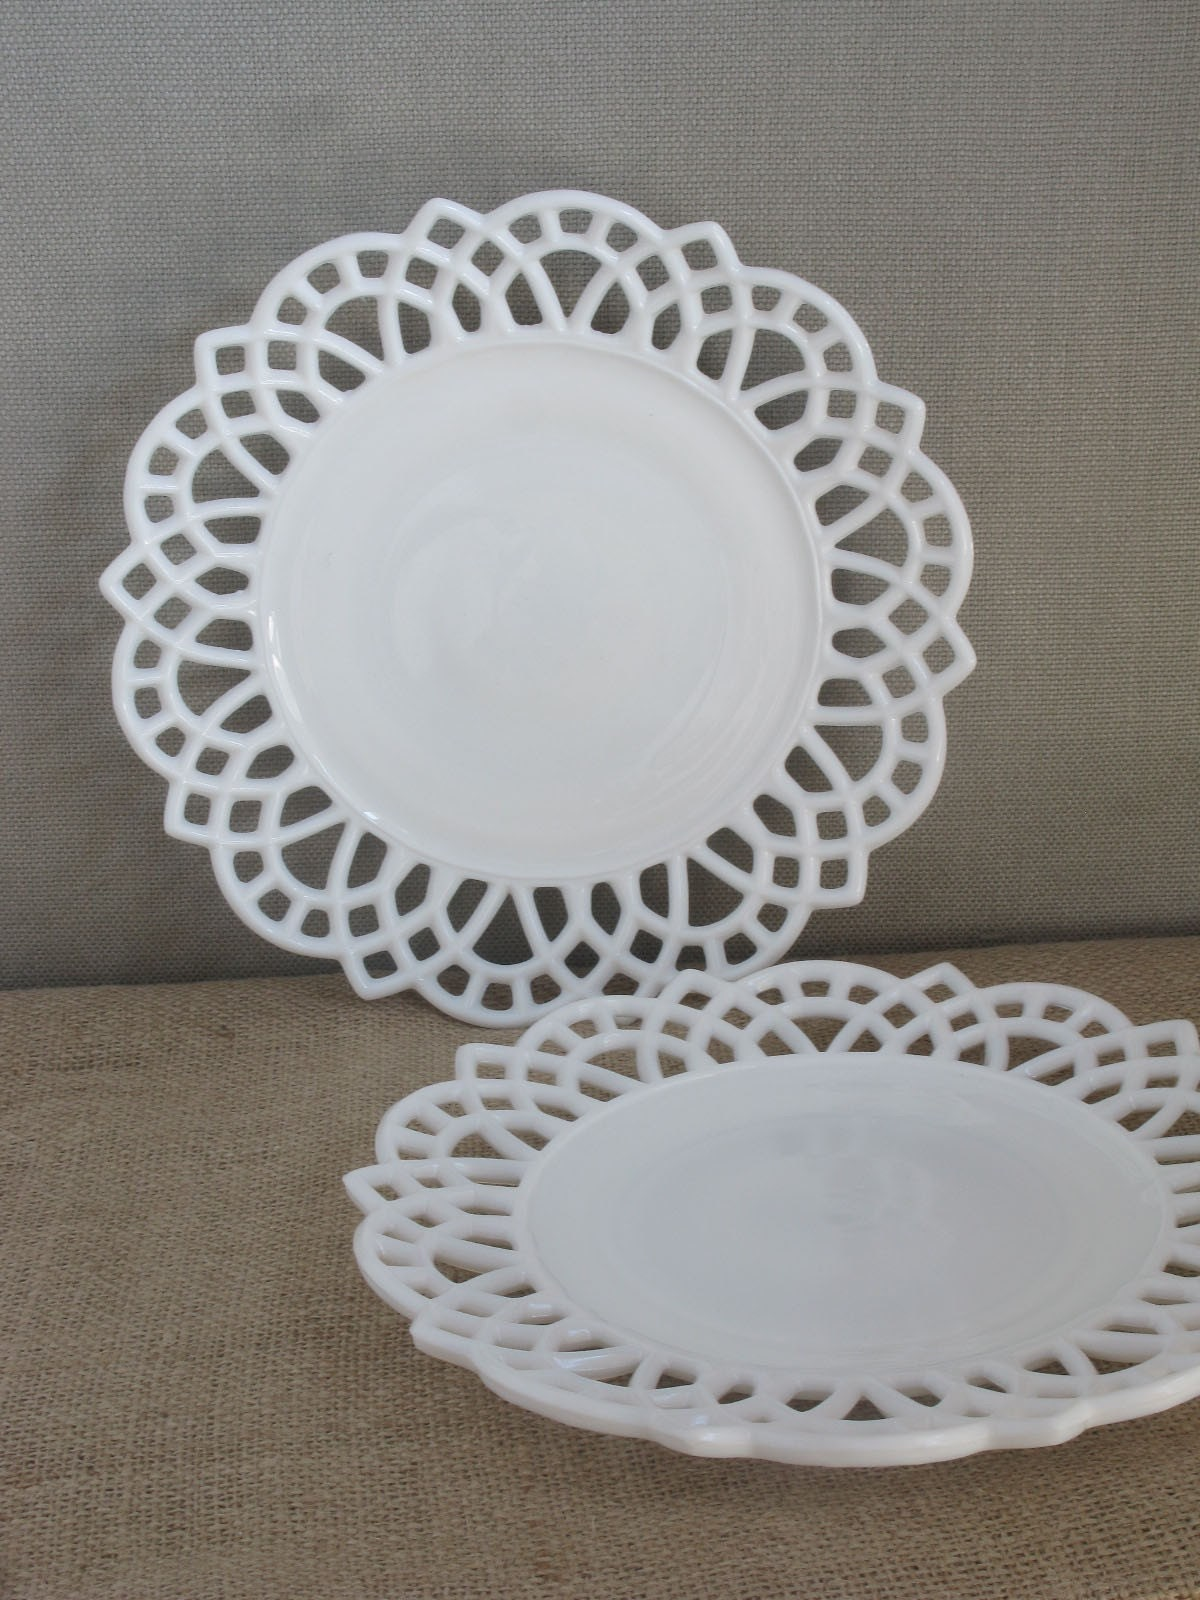 Plates - 1940s Lace Edge Milk Glass Serving